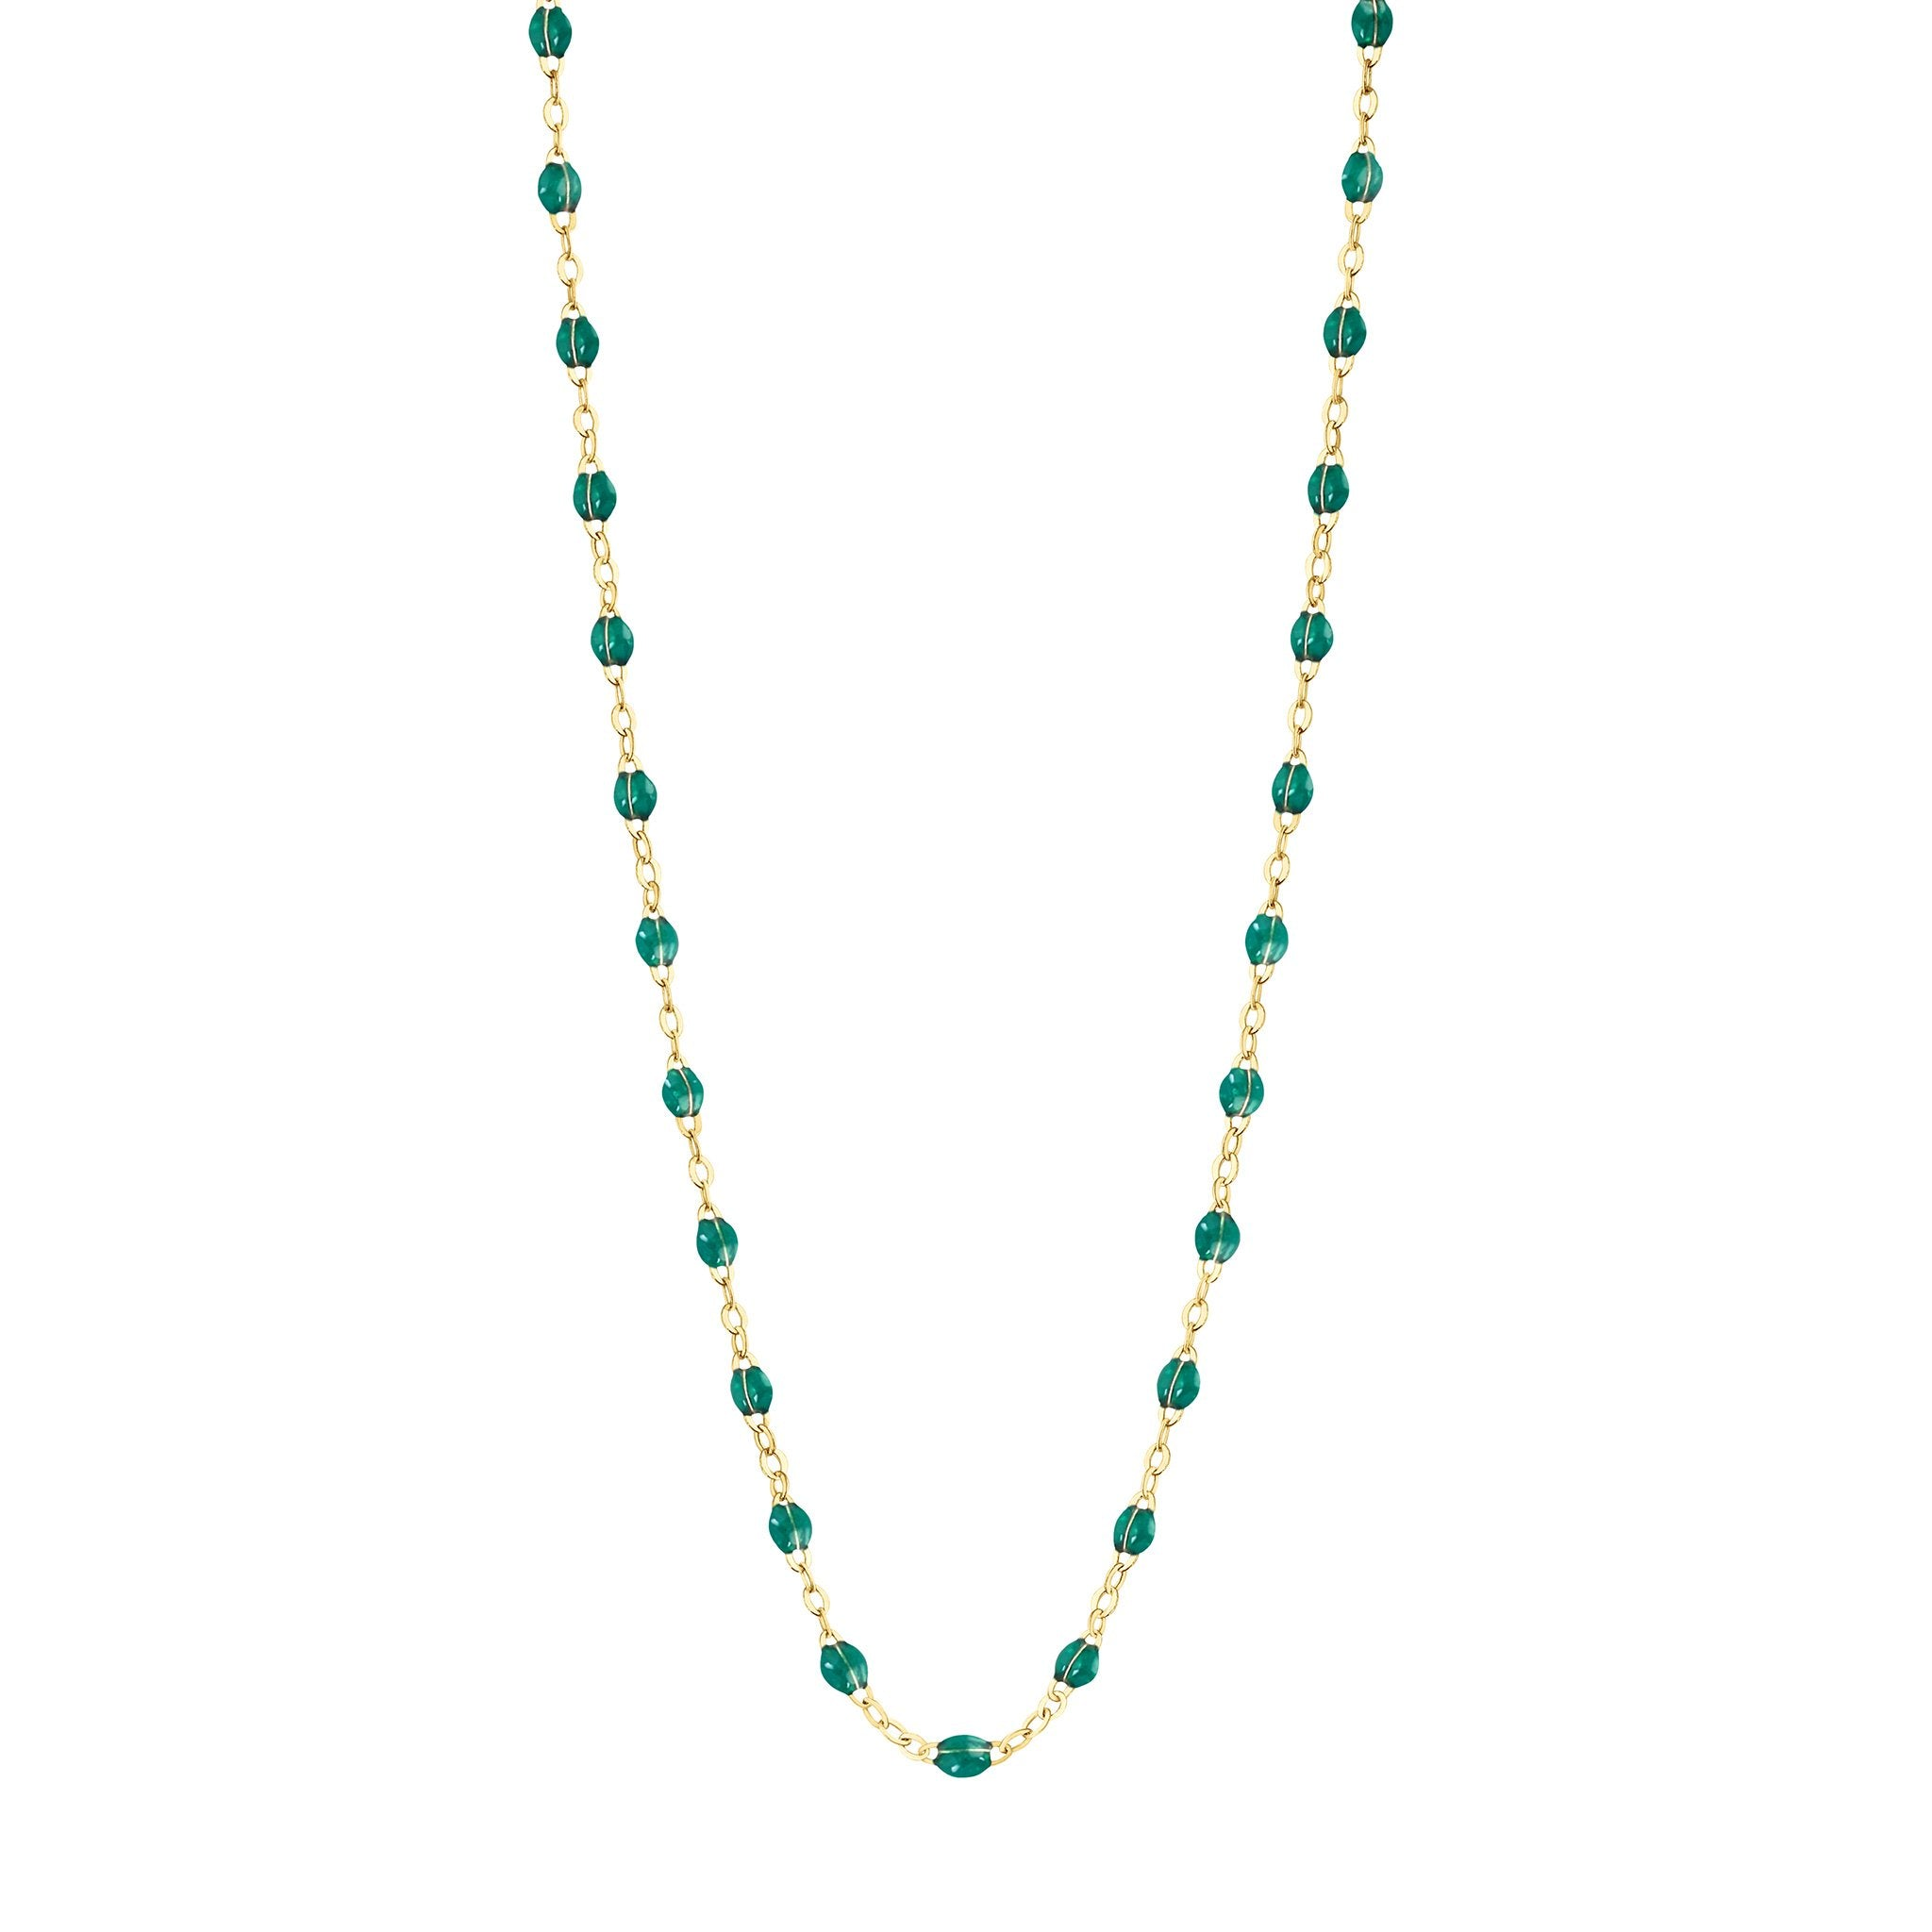 Gigi Clozeau - Classic Gigi Emerald necklace, Yellow Gold, 17.7